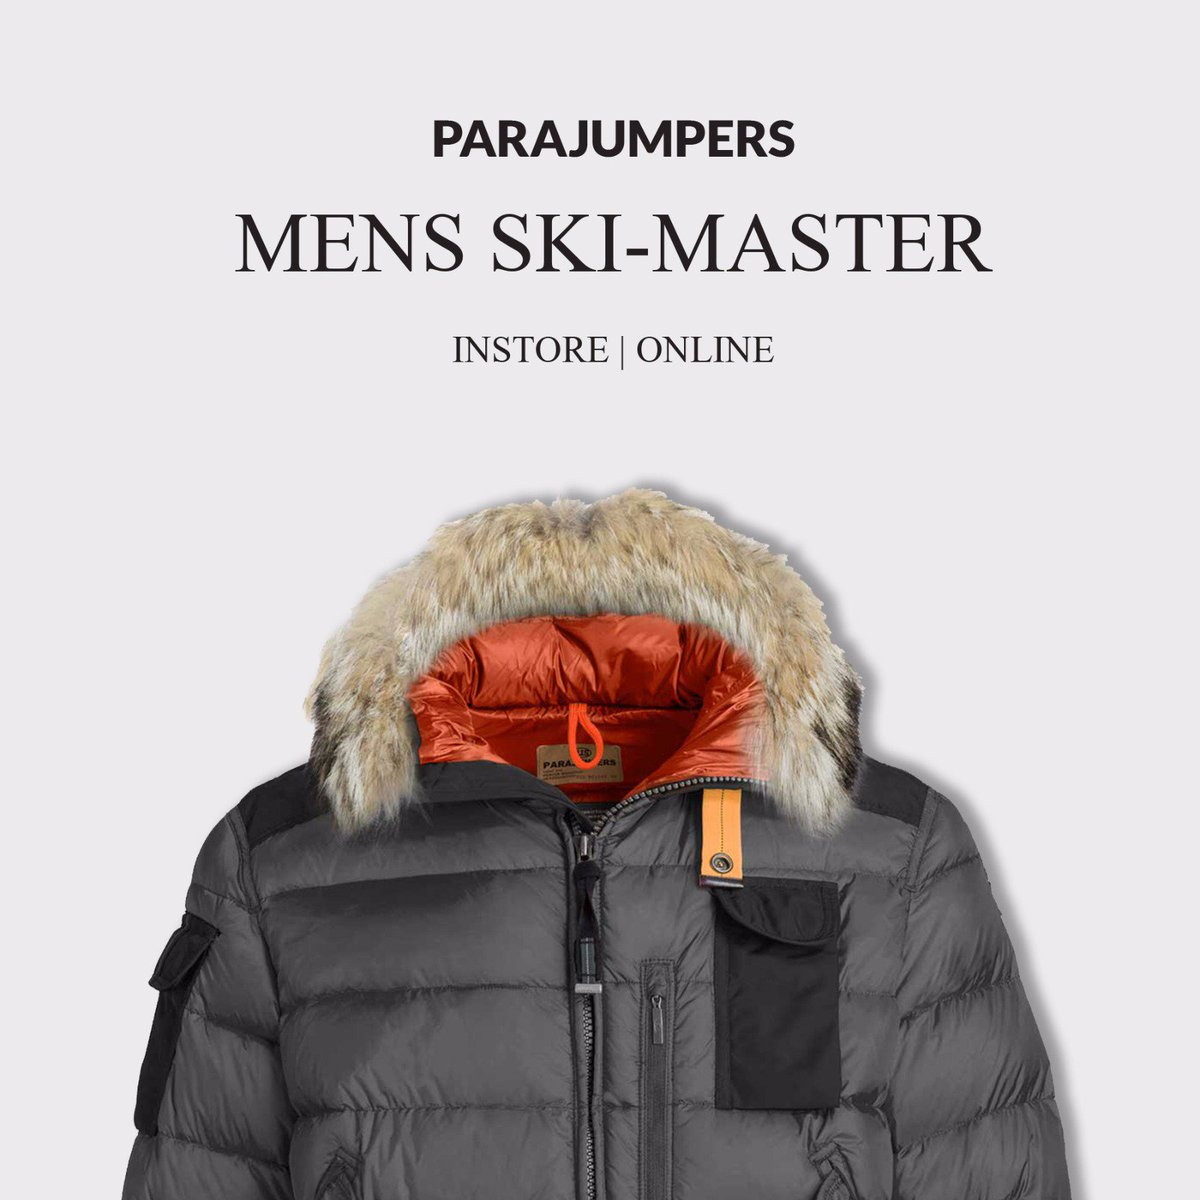 parajumpers discount code